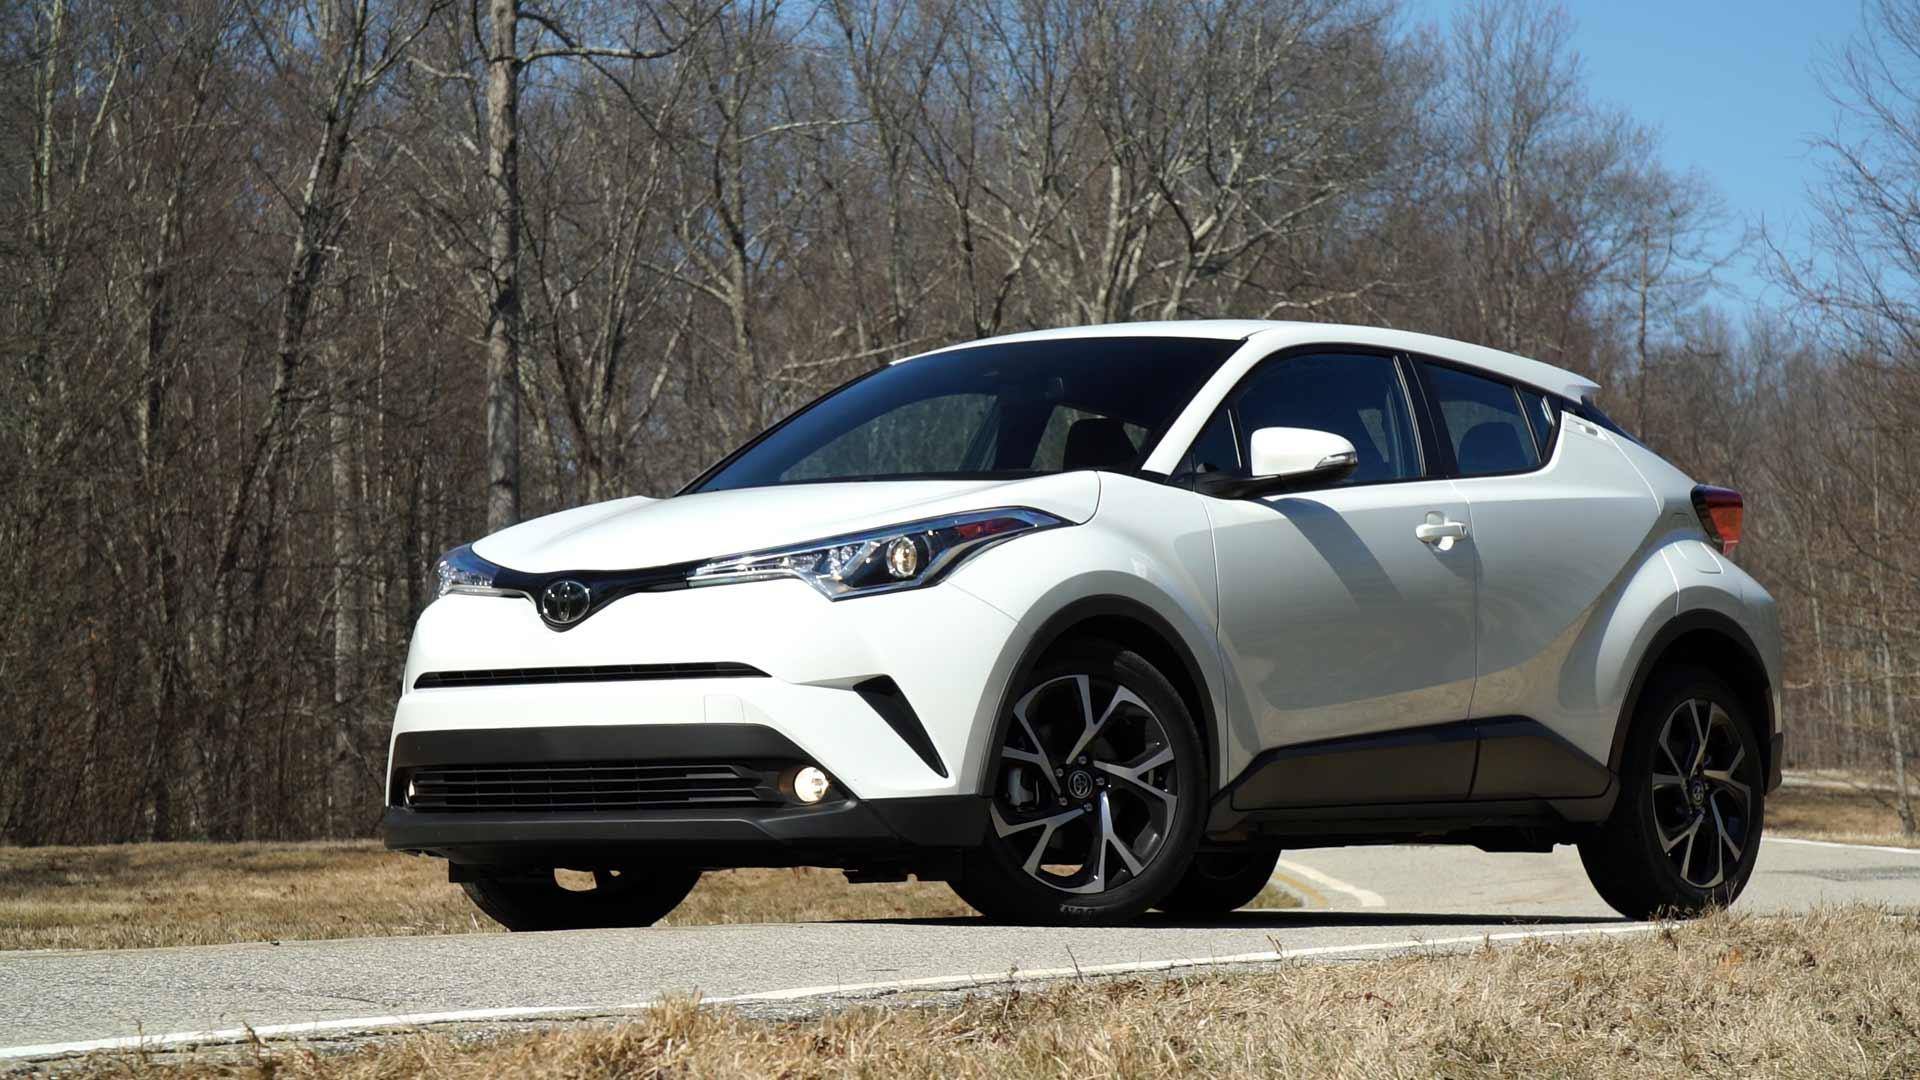 2018 Toyota C-HR SUV Targets a Younger Audience - Consumer Reports